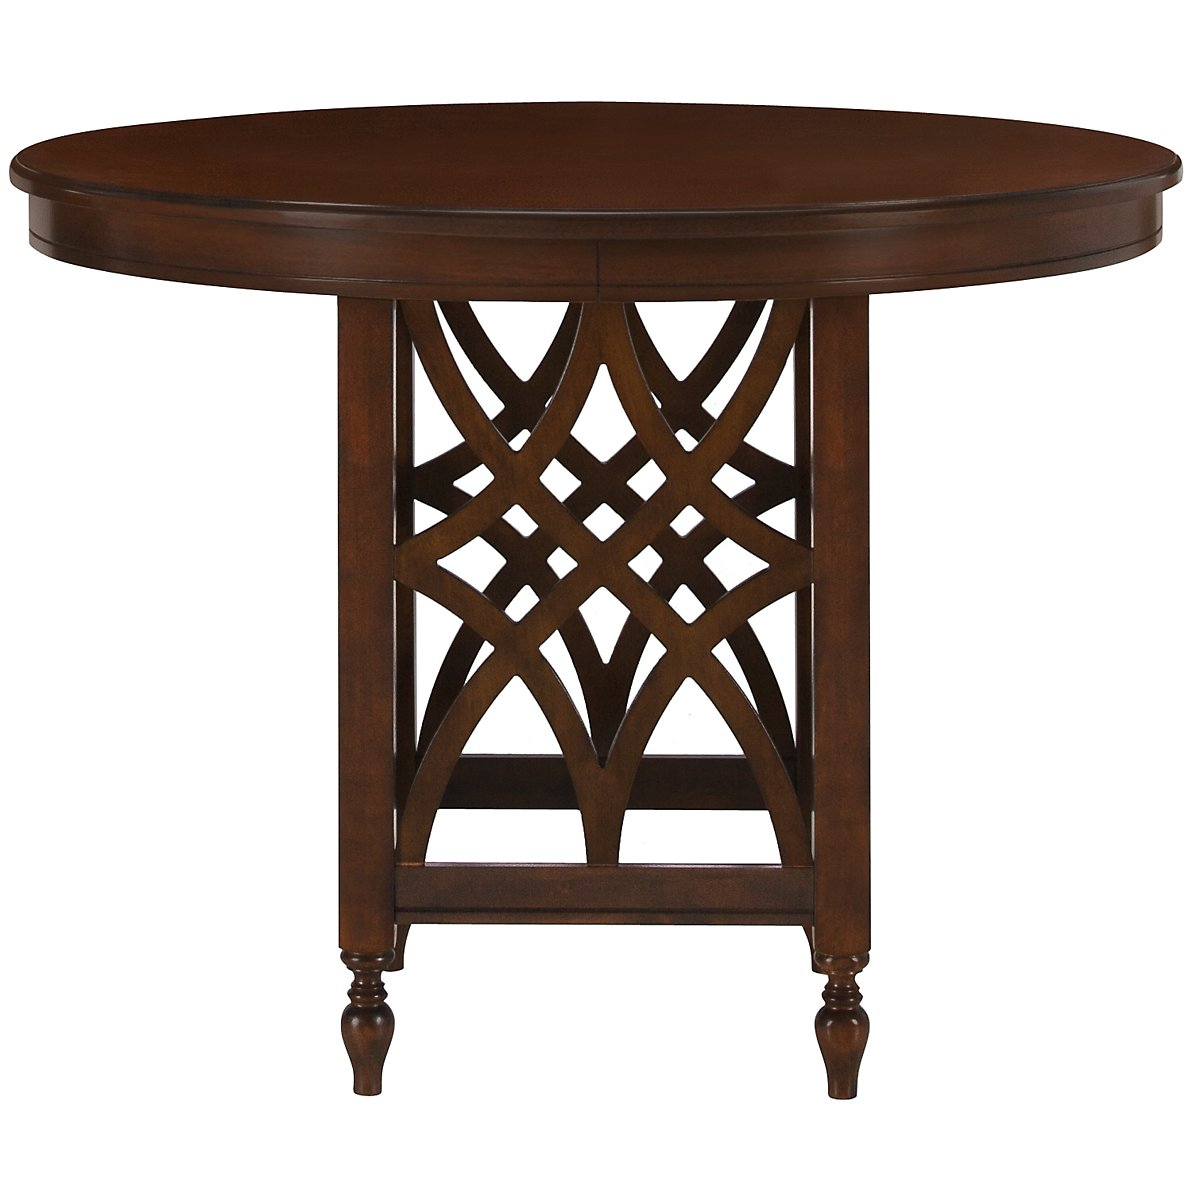 City furniture oxford mid tone round high dining table for High dining table